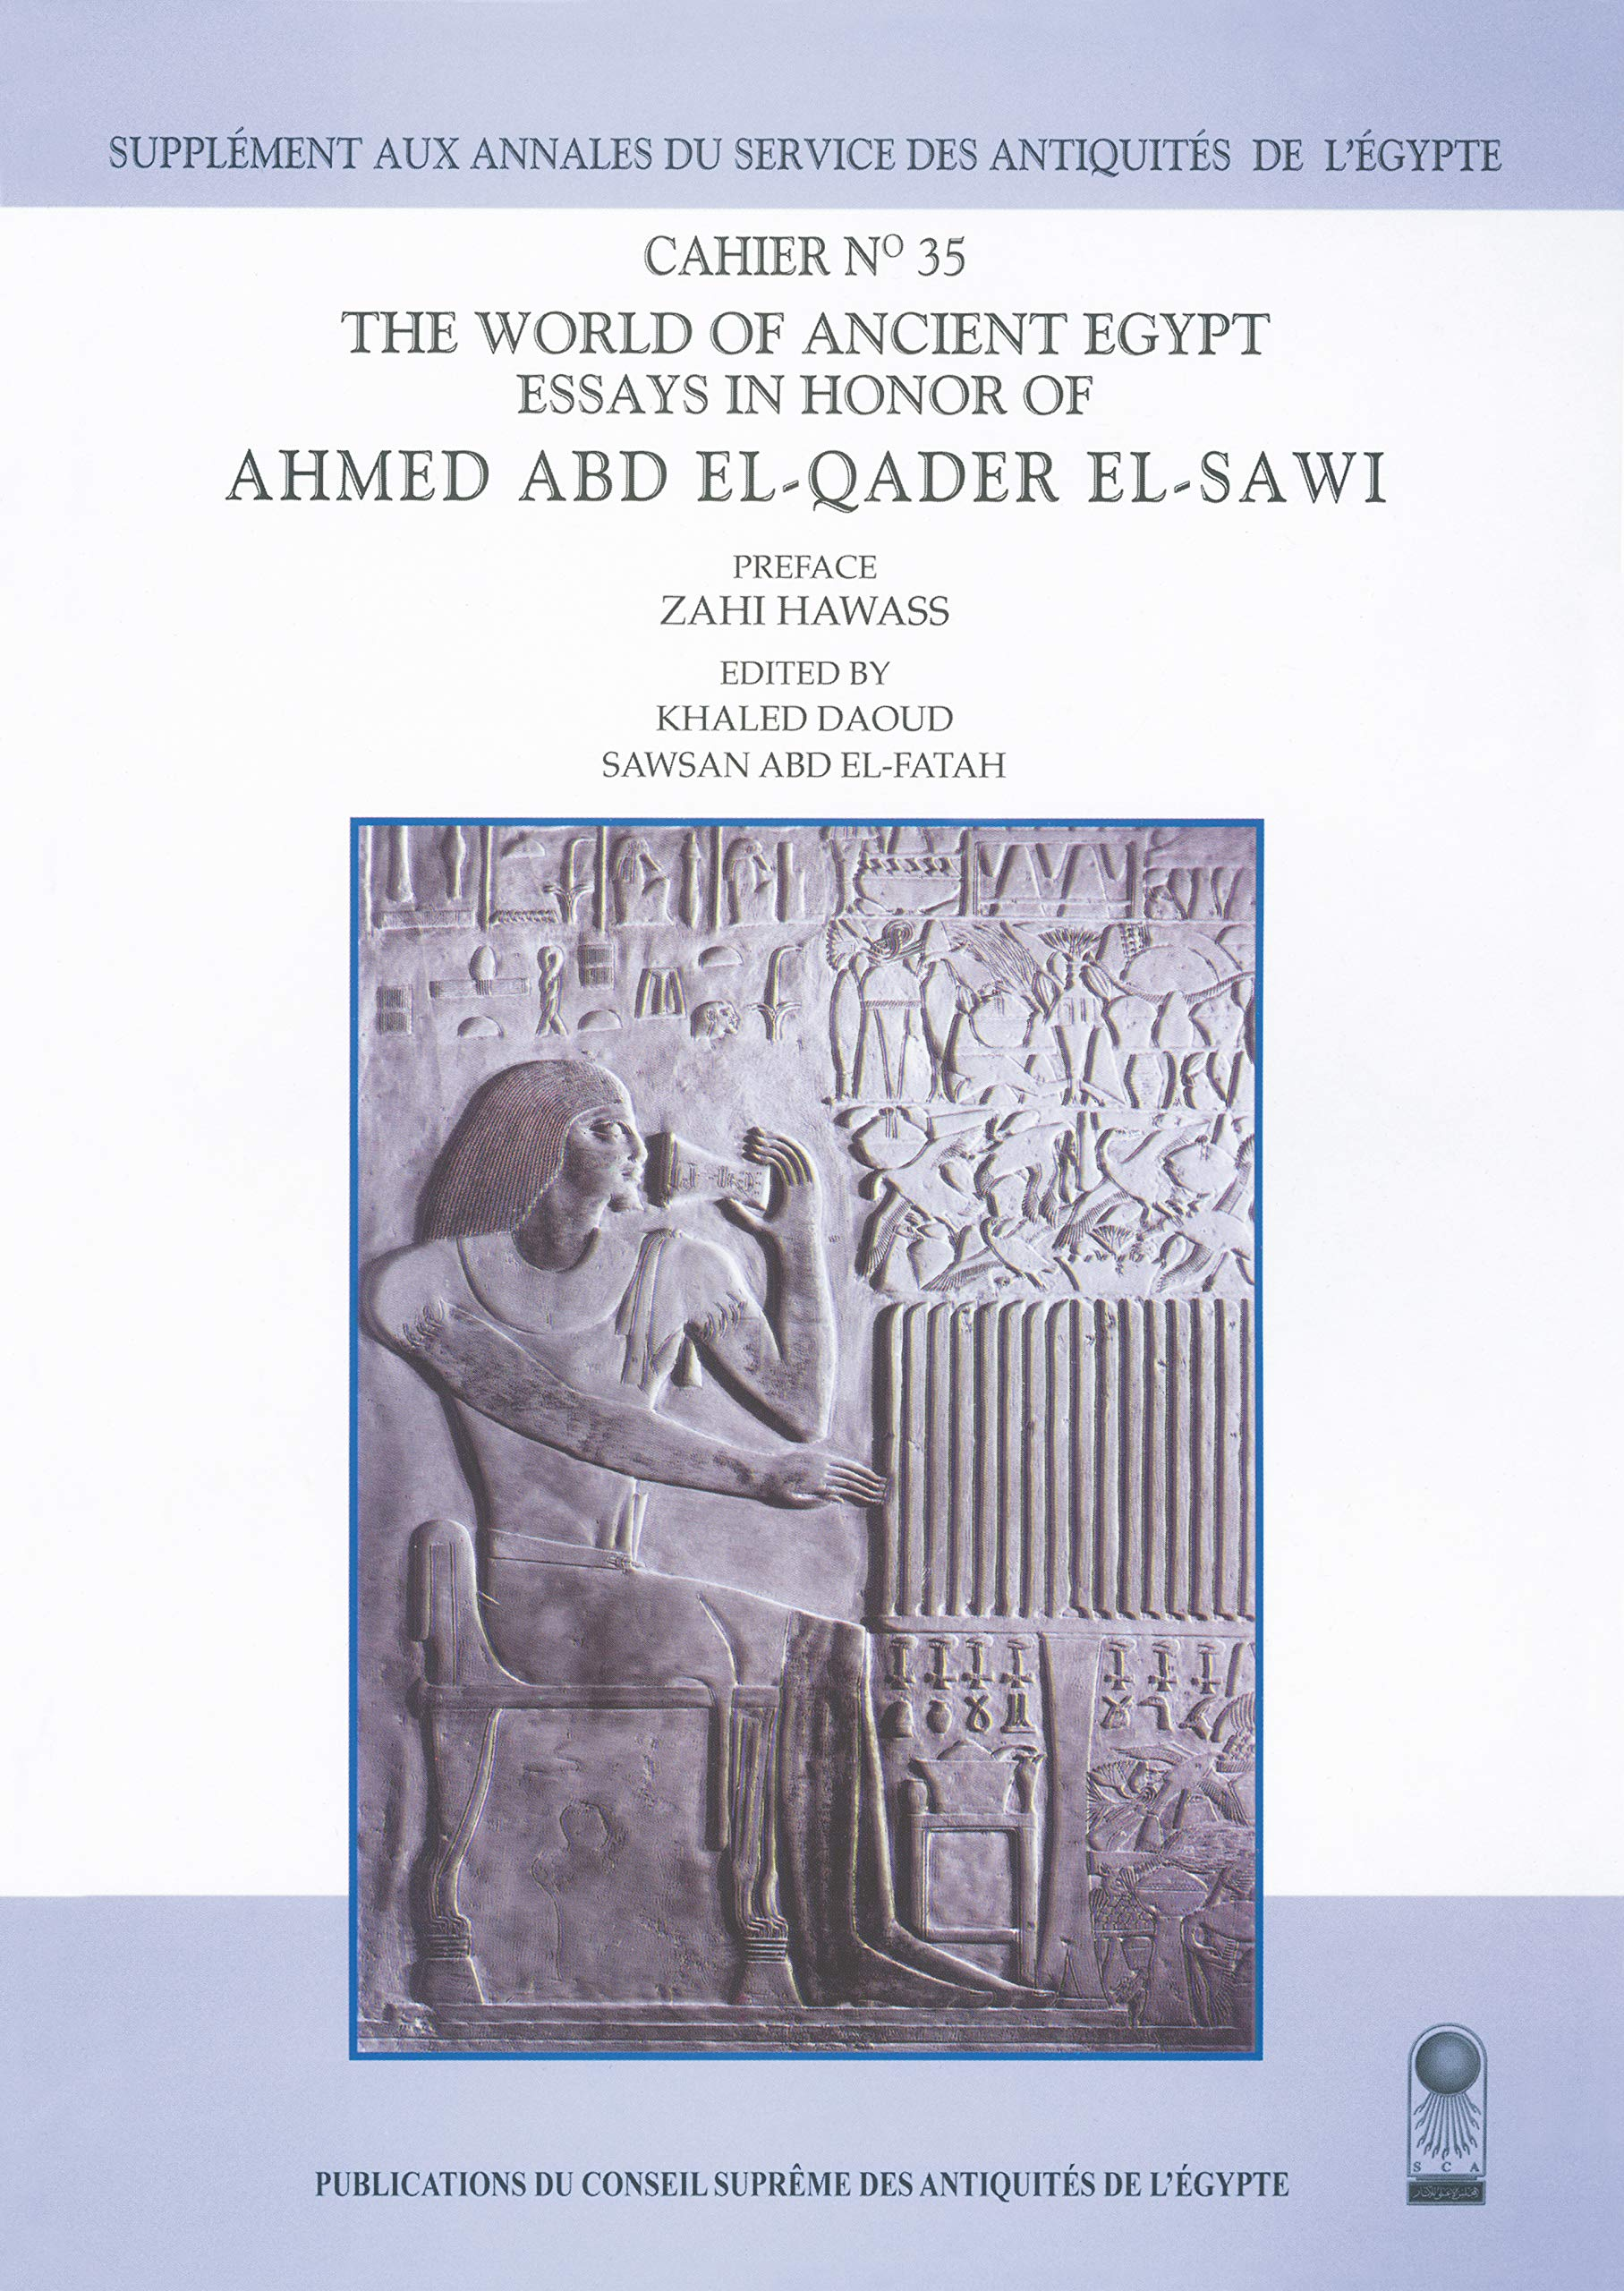 Thesis Statement For Friendship Essay The World Of Ancient Egypt Essays In Honor Of Ahmed Abd Elqader Elsawi  Cahier Annales Du Service Des Antiquits De Legypte Annales Du Service  Des  Business Essay Format also High School Essay Topics The World Of Ancient Egypt Essays In Honor Of Ahmed Abd Elqader El  How To Write A Good English Essay